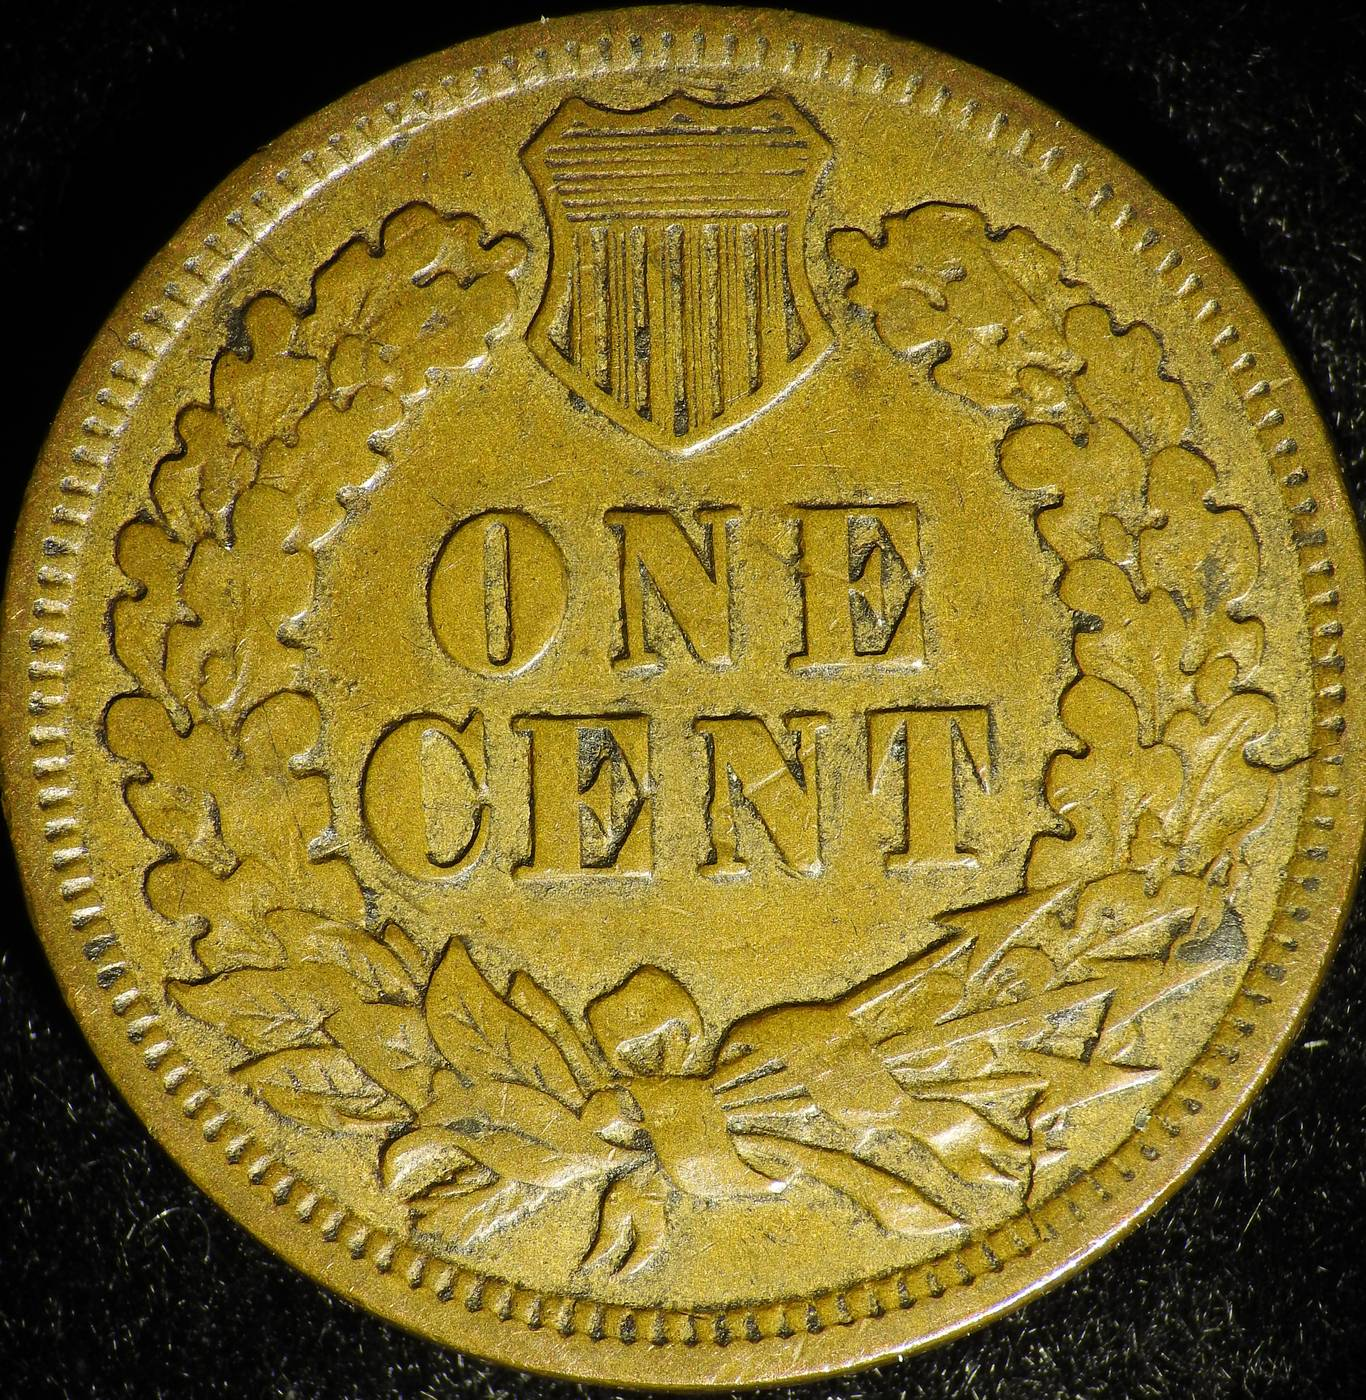 1905 CUD-006 - Indian Head Penny